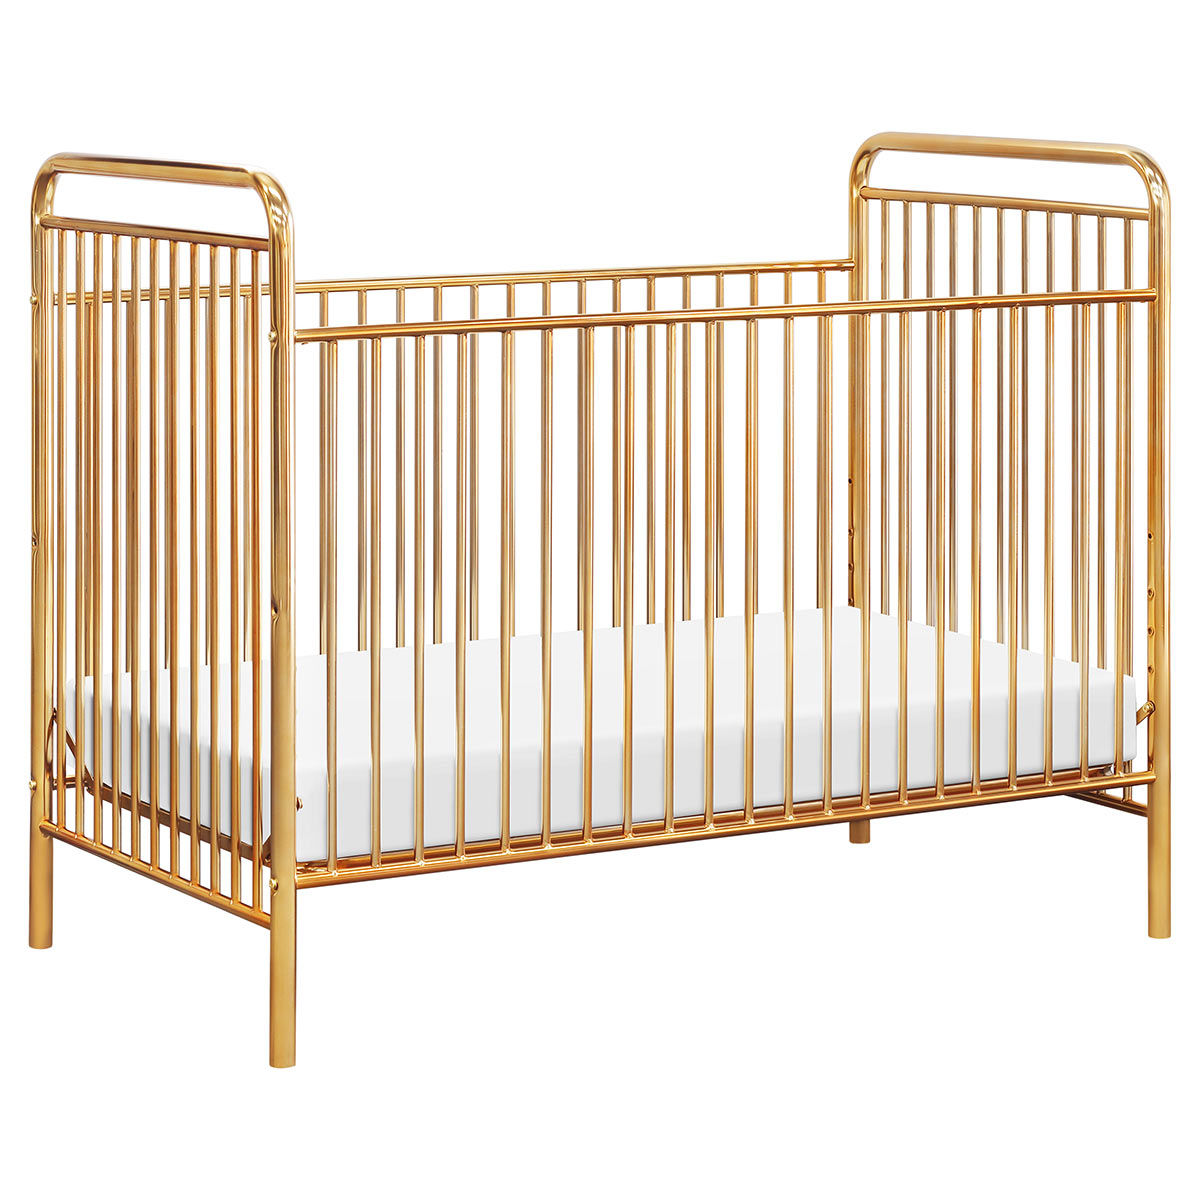 Babyletto Jubilee 3-in-1 Convertible Crib